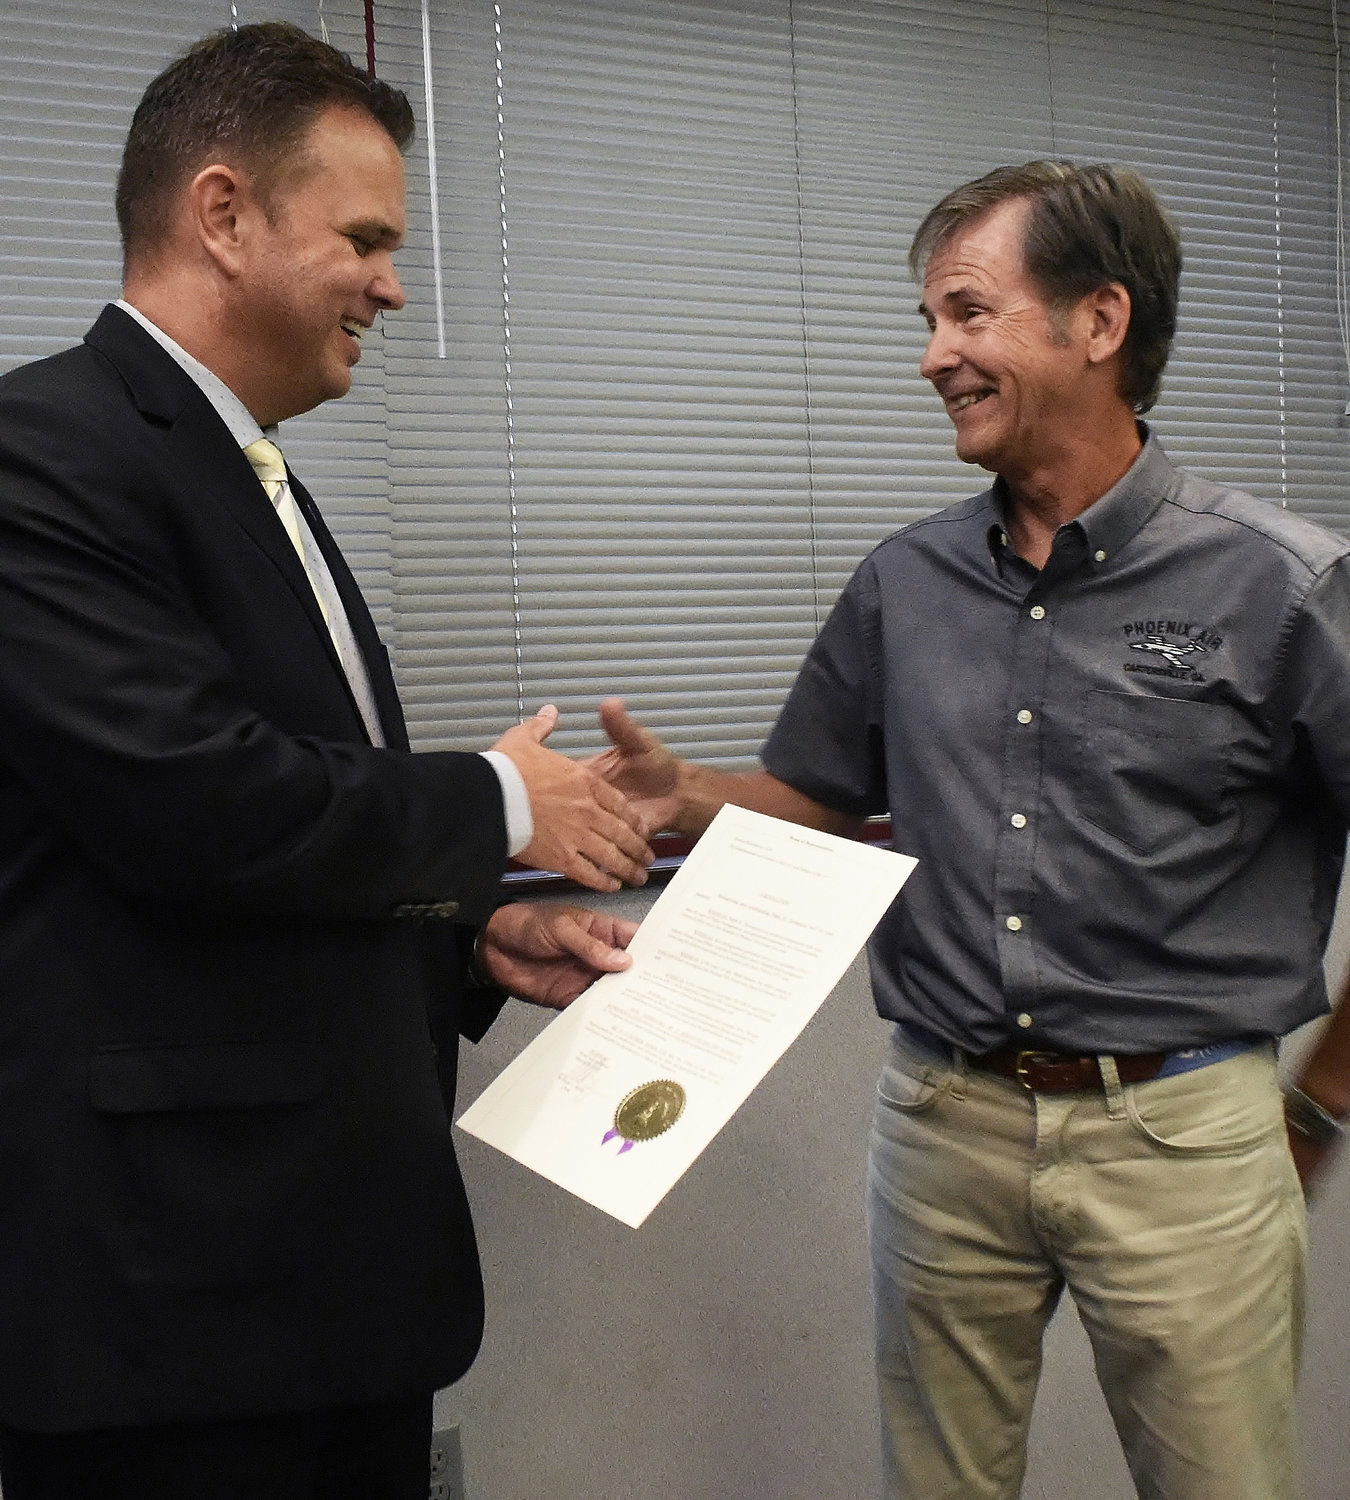 "Former State Representative Christian Coomer presented a proclamation from the Georgia House of Representatives honoring the oldest driver to ever start a Daytona 500 stock car race. Mark Thompson, founder and CEO of Phoenix Air, began racing in 1991 in the Automobile Racing Club of America series. In 2015, the-then 63-year-old won the pole position â?? the no.1 starting position â?? for ARCA's season-opening race, the oldest pole winner for any Daytona race. At age 66, Thompson drove his No. 66 Ford to a 22nd place finish in the ""Great American Race."" House Resolution 1638, sponsored by former Bartow representatives Coomer and Paul Battles, lauded Thopmpson for his effort saying, ""his extraordinary resilience and courage have brought special recognition to the State of Georgia."""